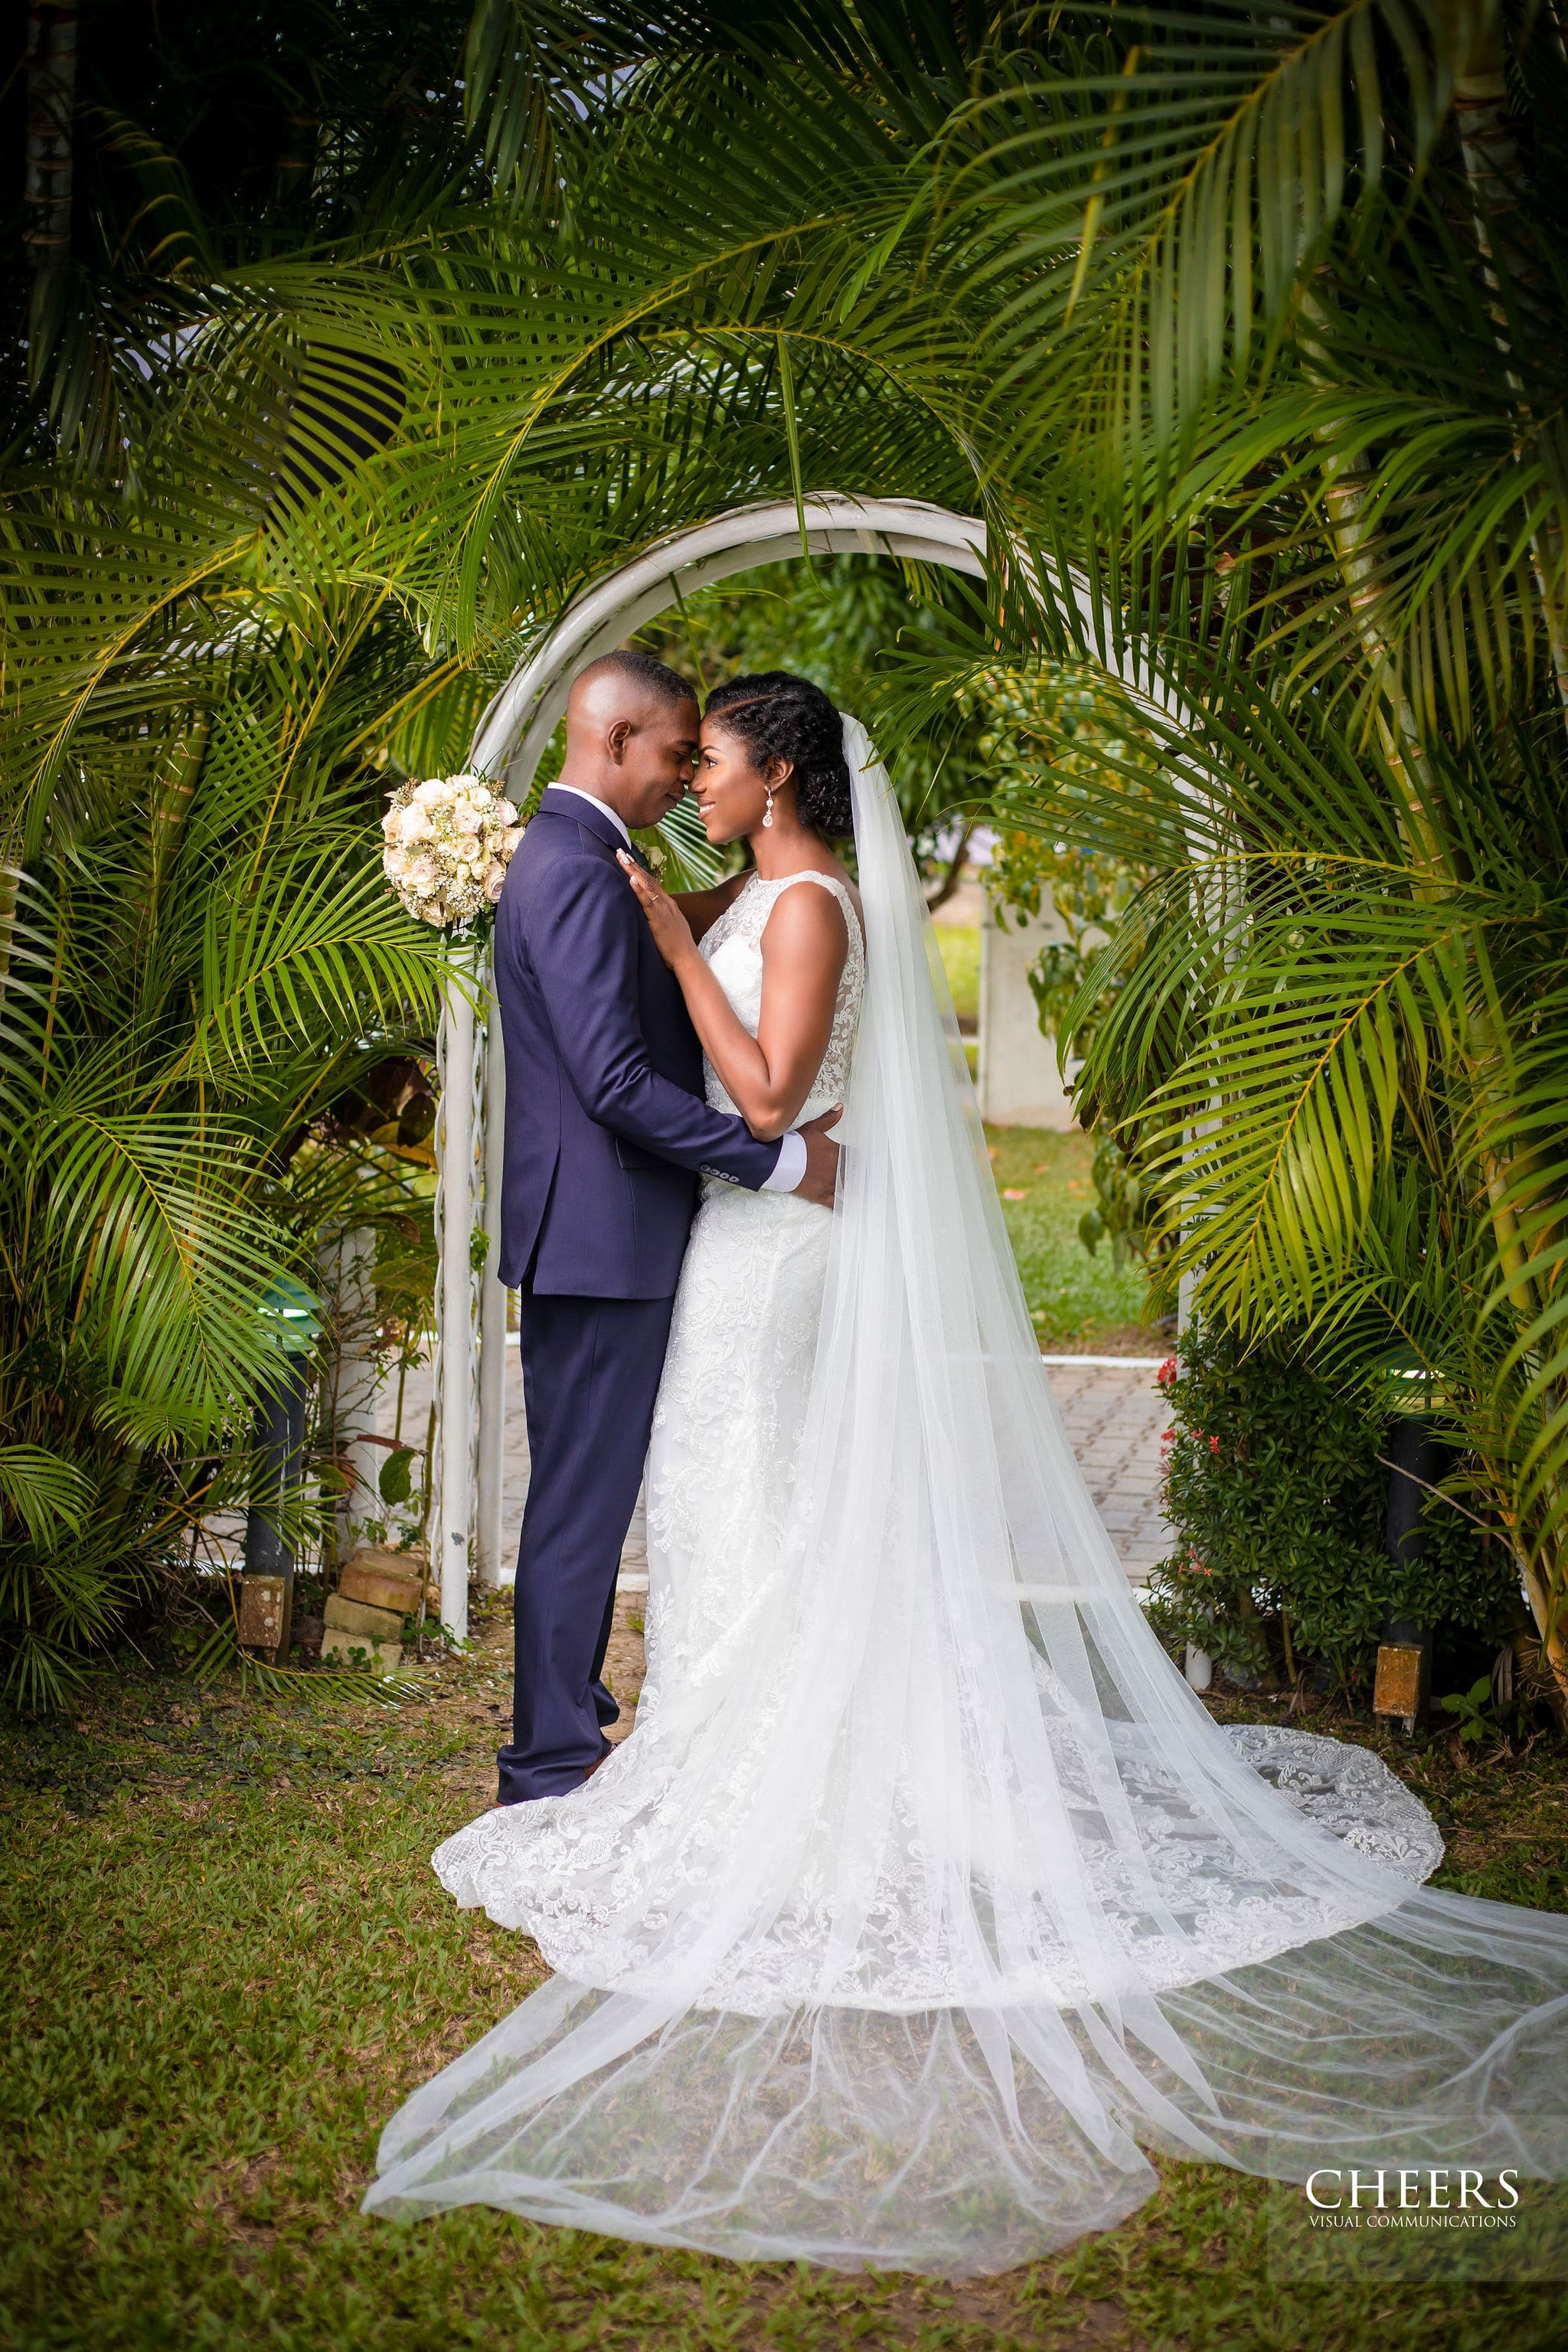 Angelina & Calvin's Rustic Garden Wedding In Trinidad & Tobago, Photography by Cheers Visual Communications for Destination Wedding network Adriana Weddings